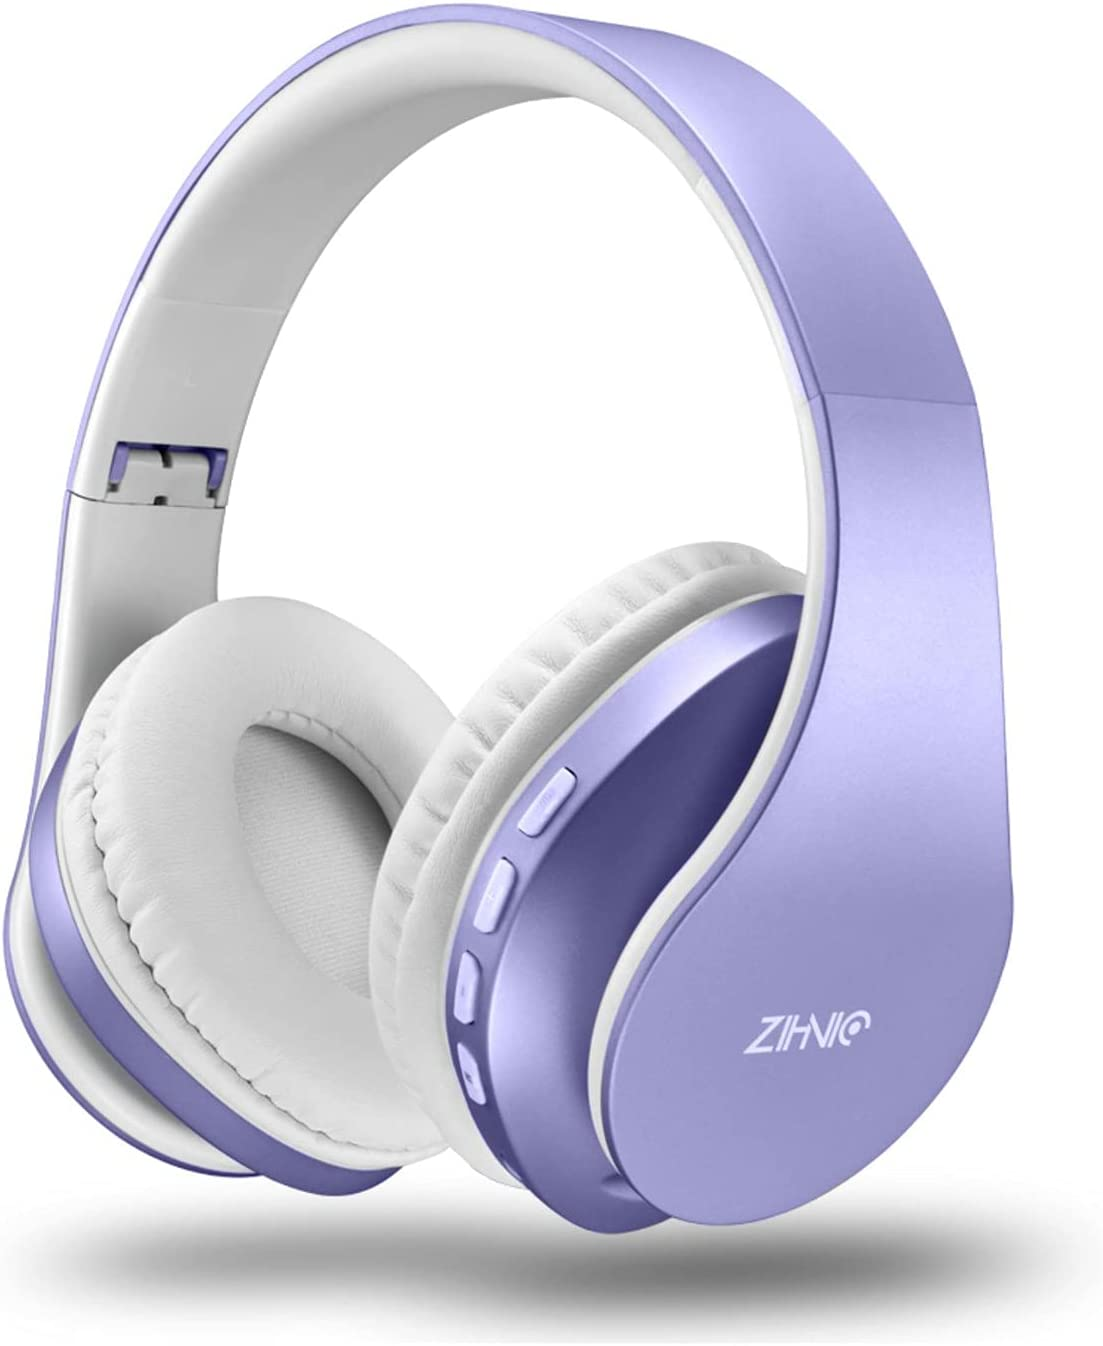 Bluetooth Headphones Over-Ear, Zihnic Foldable Wireless and Wired Stereo Headset Micro SD/TF, FM for Cell Phone,PC,Soft Earmuffs &Light Weight for Prolonged Wearing (Purple)